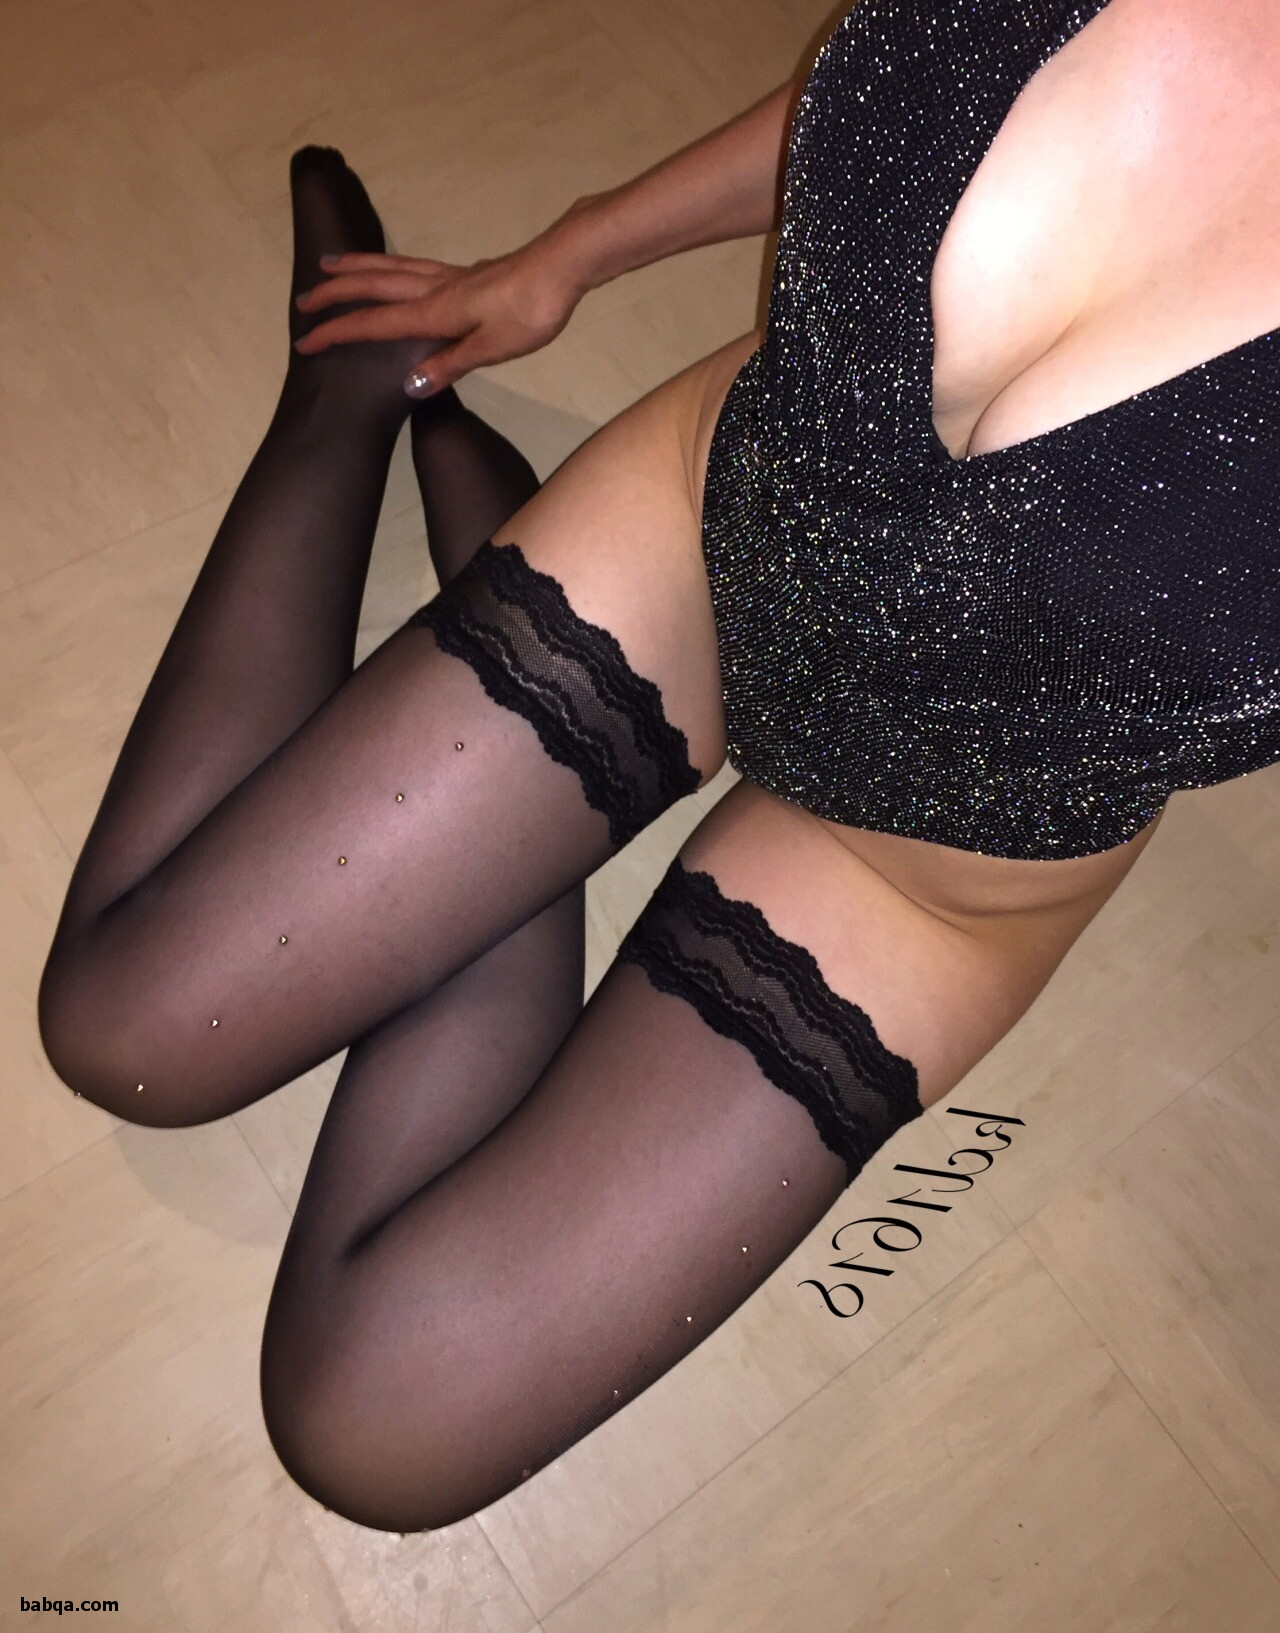 best place to lingerie online and selling used underwear online